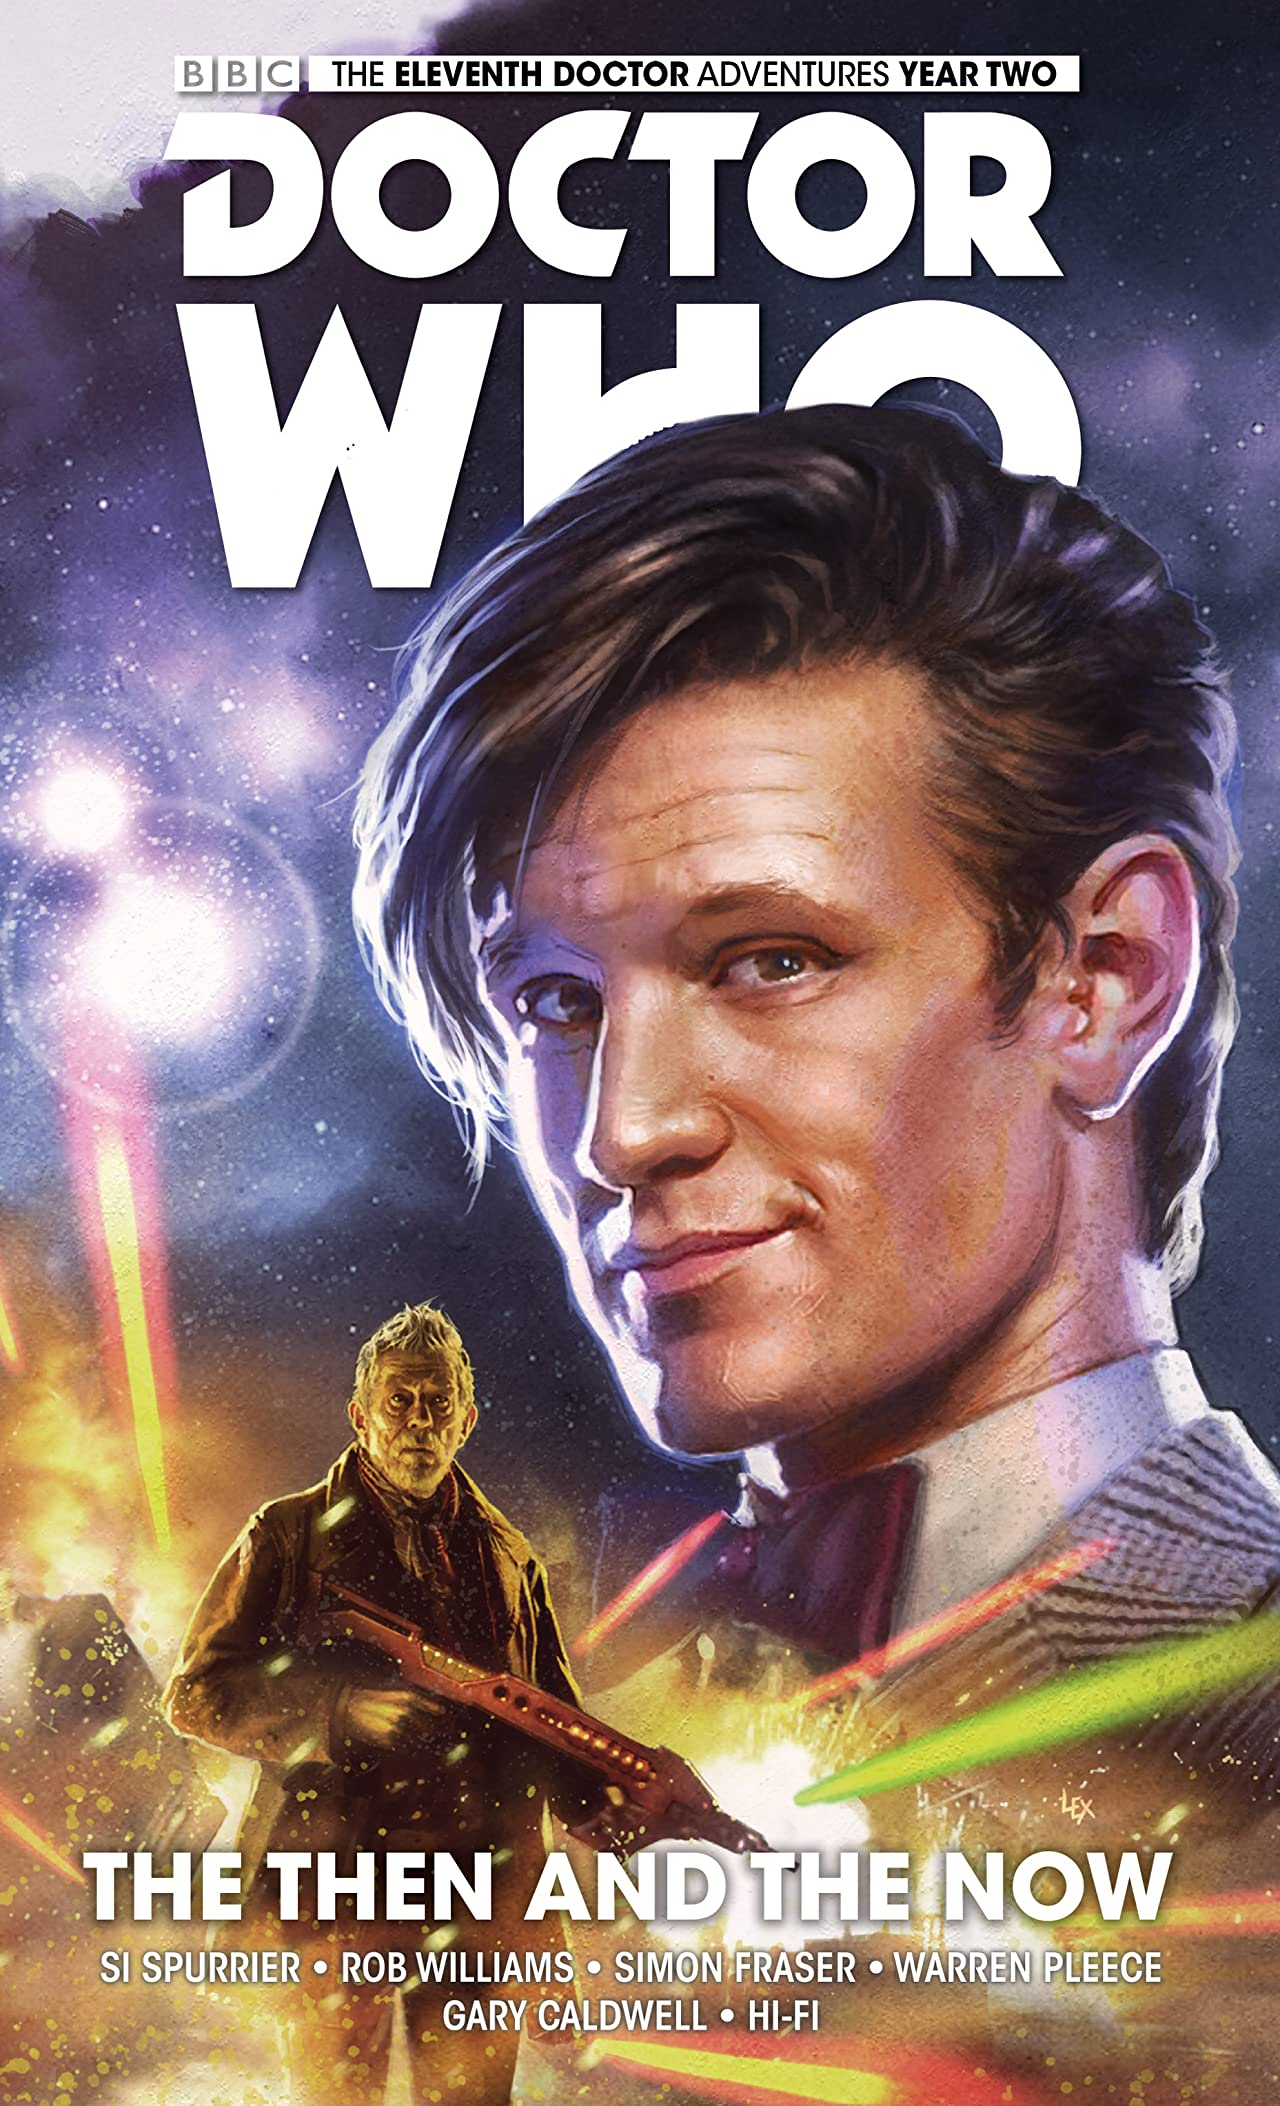 Doctor Who: The Eleventh Doctor Tome 4